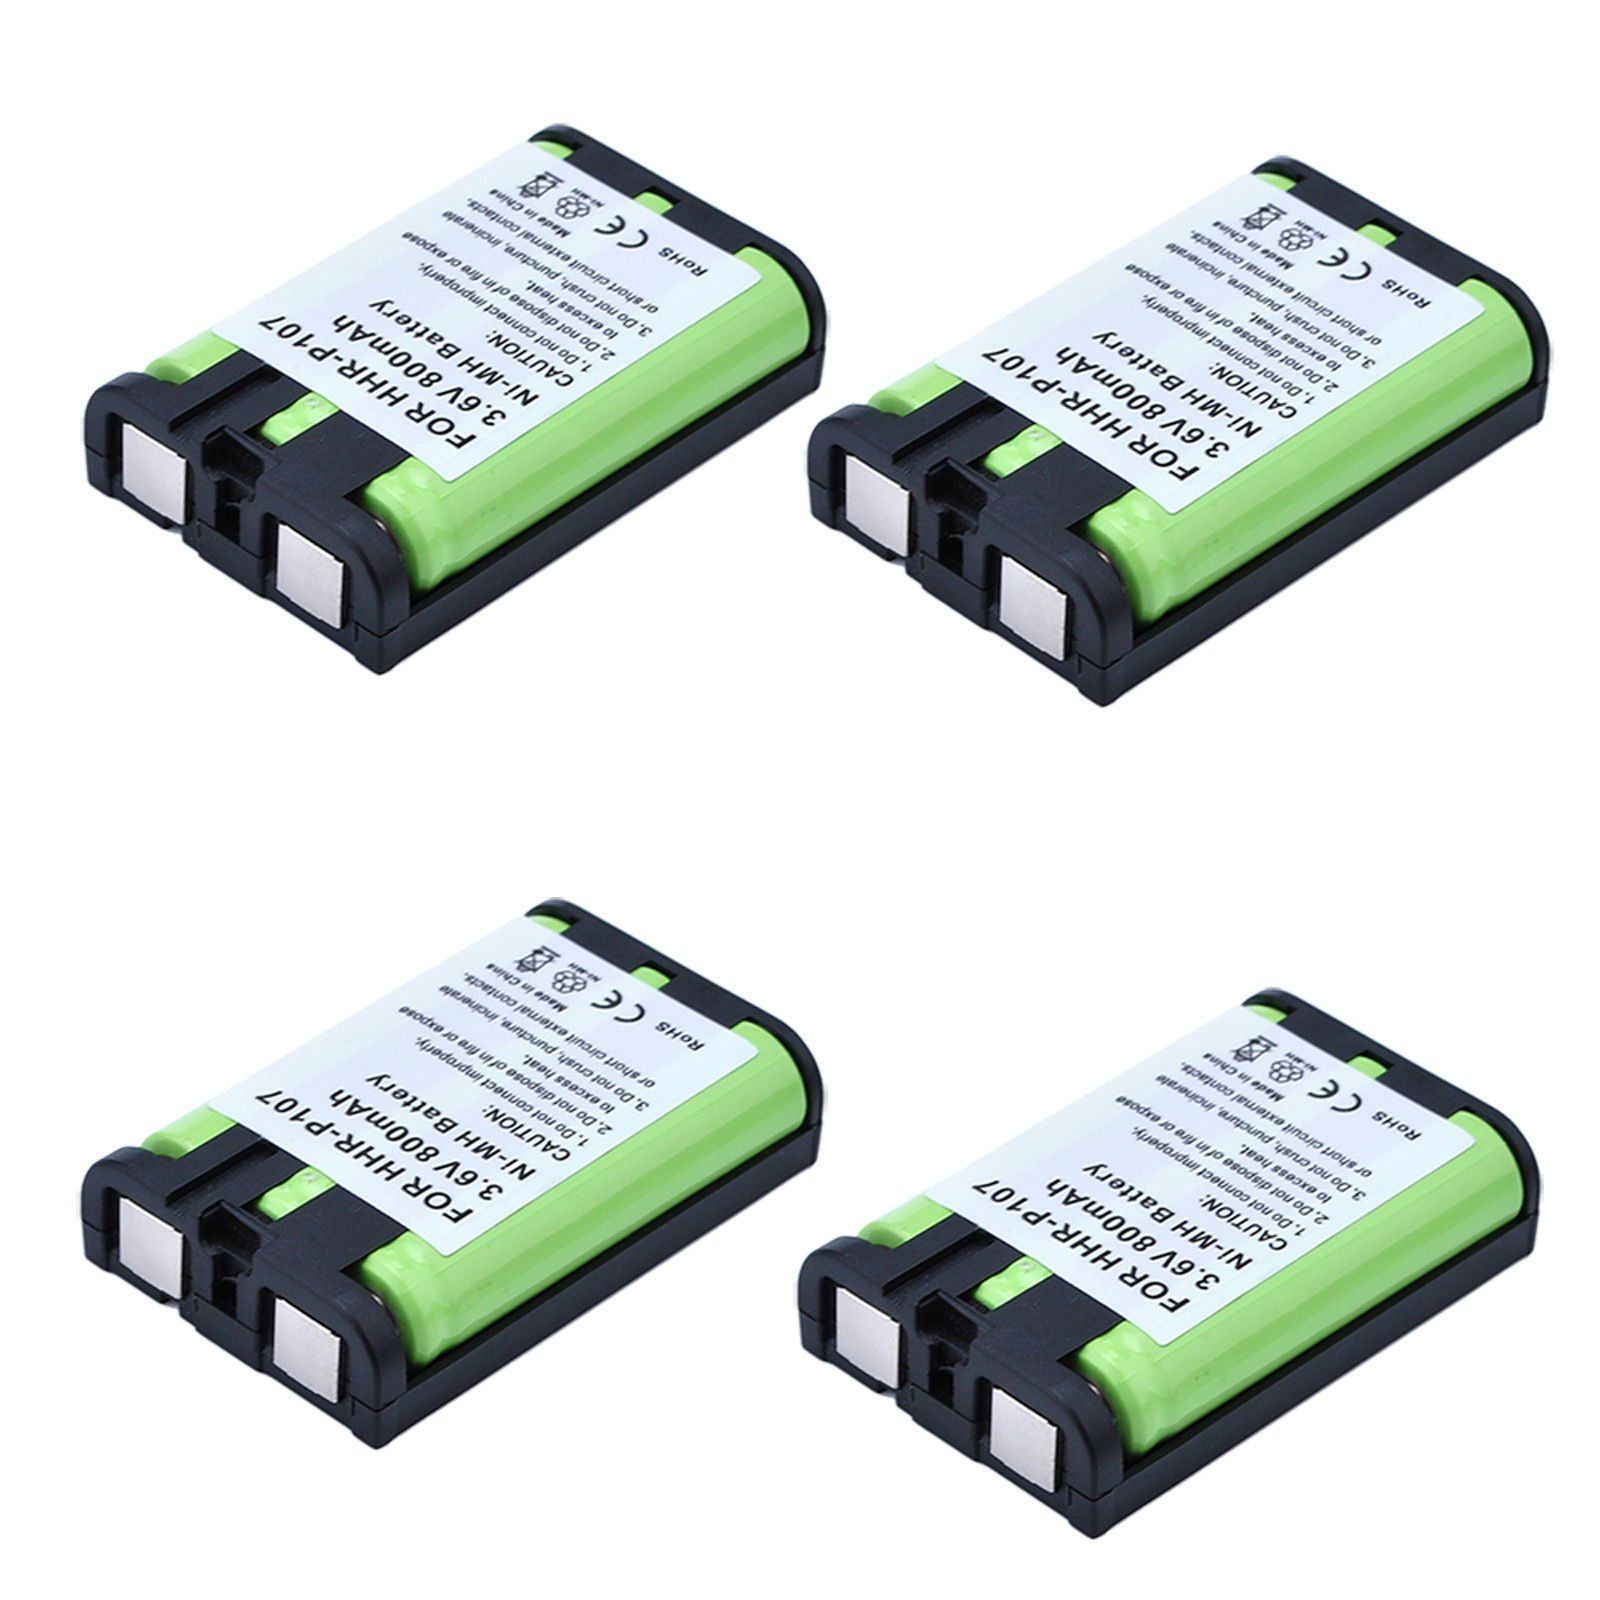 Masione 4 Pack Hhr P107 Cordless Phone Battery 3 6v Ni Mh Replacement Rechargeable Battery For Panasonic Hh Cordless Phone Phone Battery Rechargeable Batteries